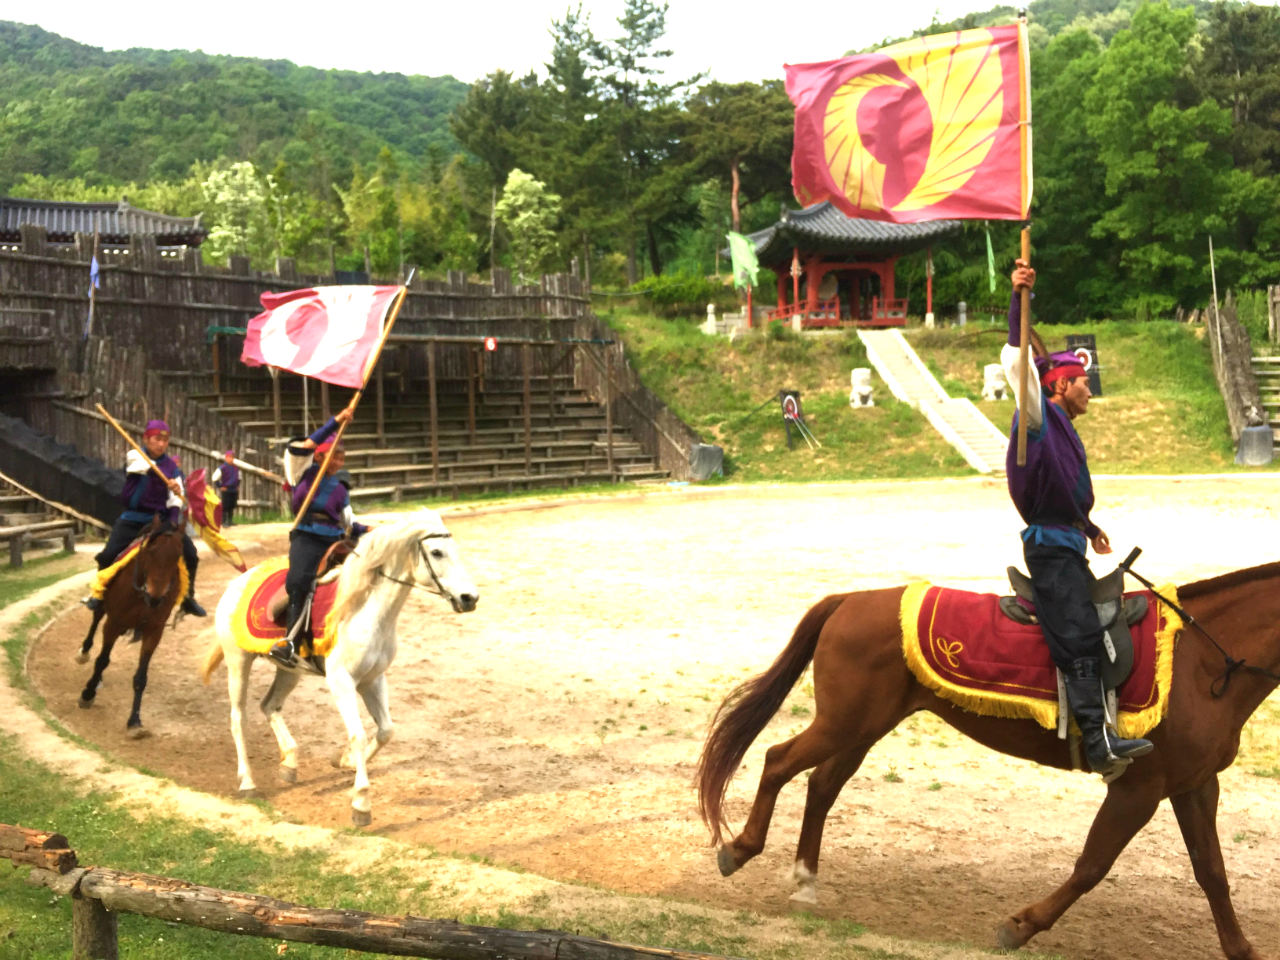 FLOWERING KNIGHTS. The Hwarang show is one of the main attractions of the park. Watch these talented performers do tricks while on horseback!